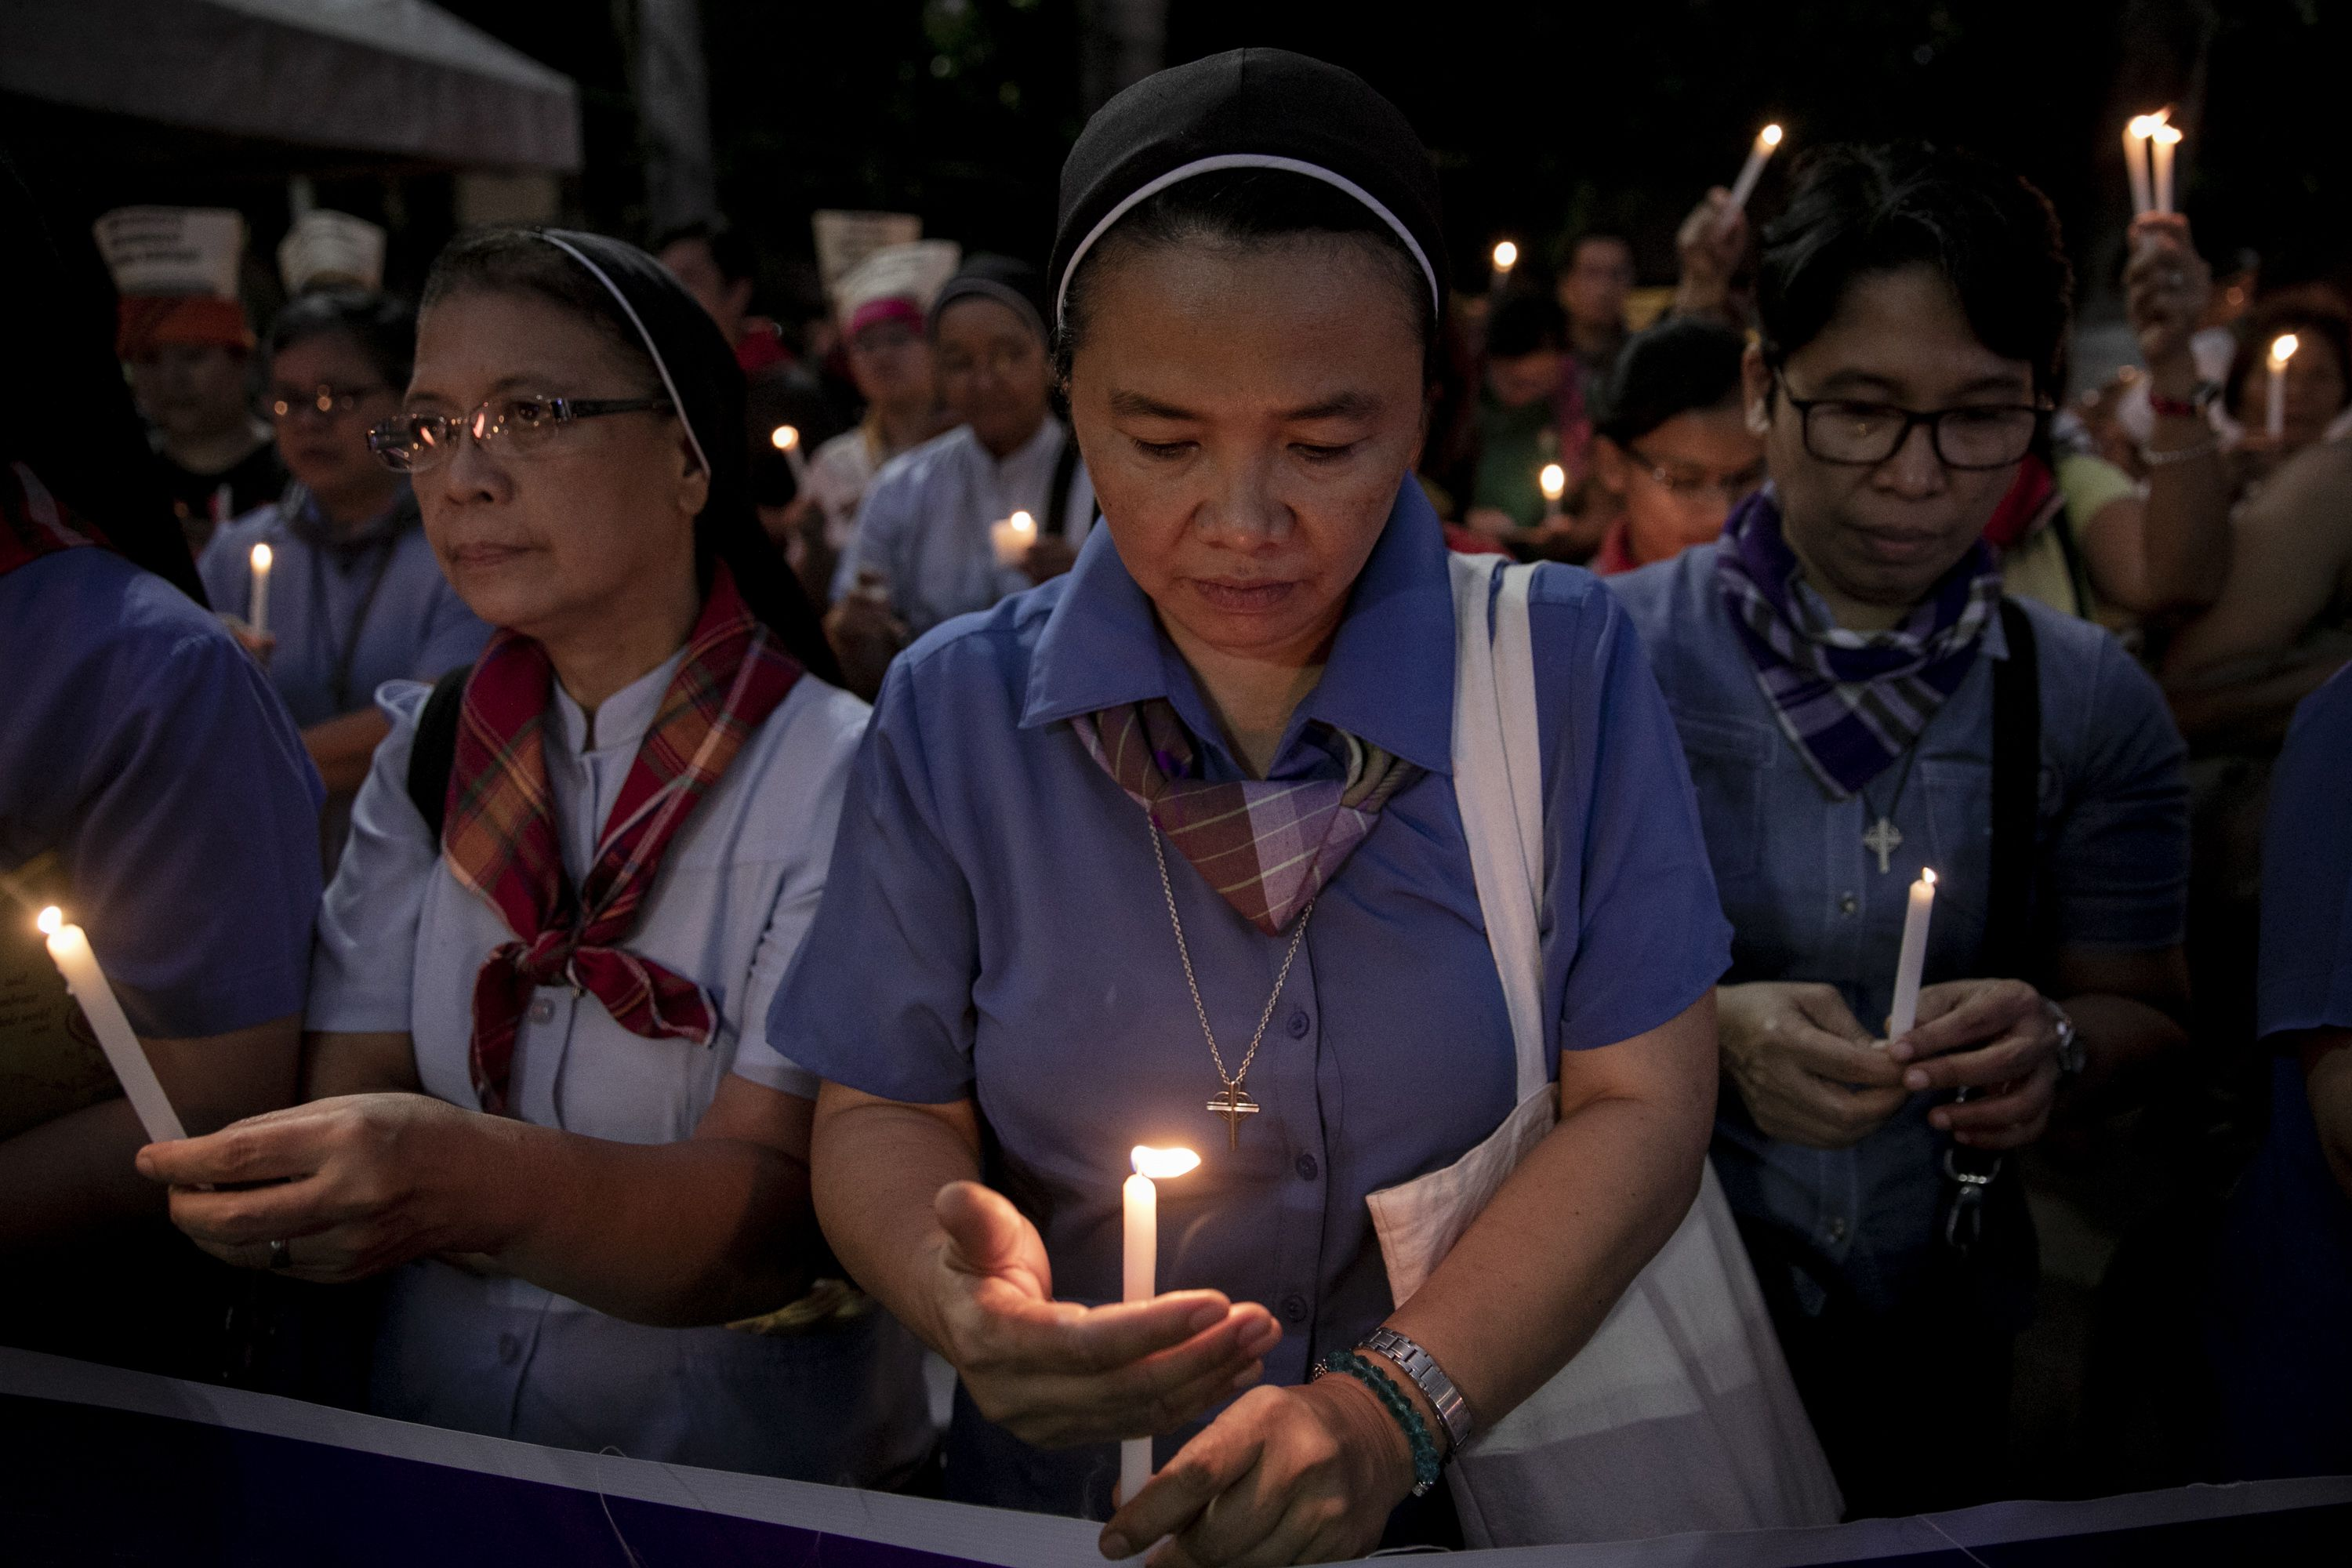 """Nuns light their candles during a demonstration calling for """"truth, justice, and peace"""" across Malate Church in Manila. Image by Eloisa Lopez. Philippines, 2019."""